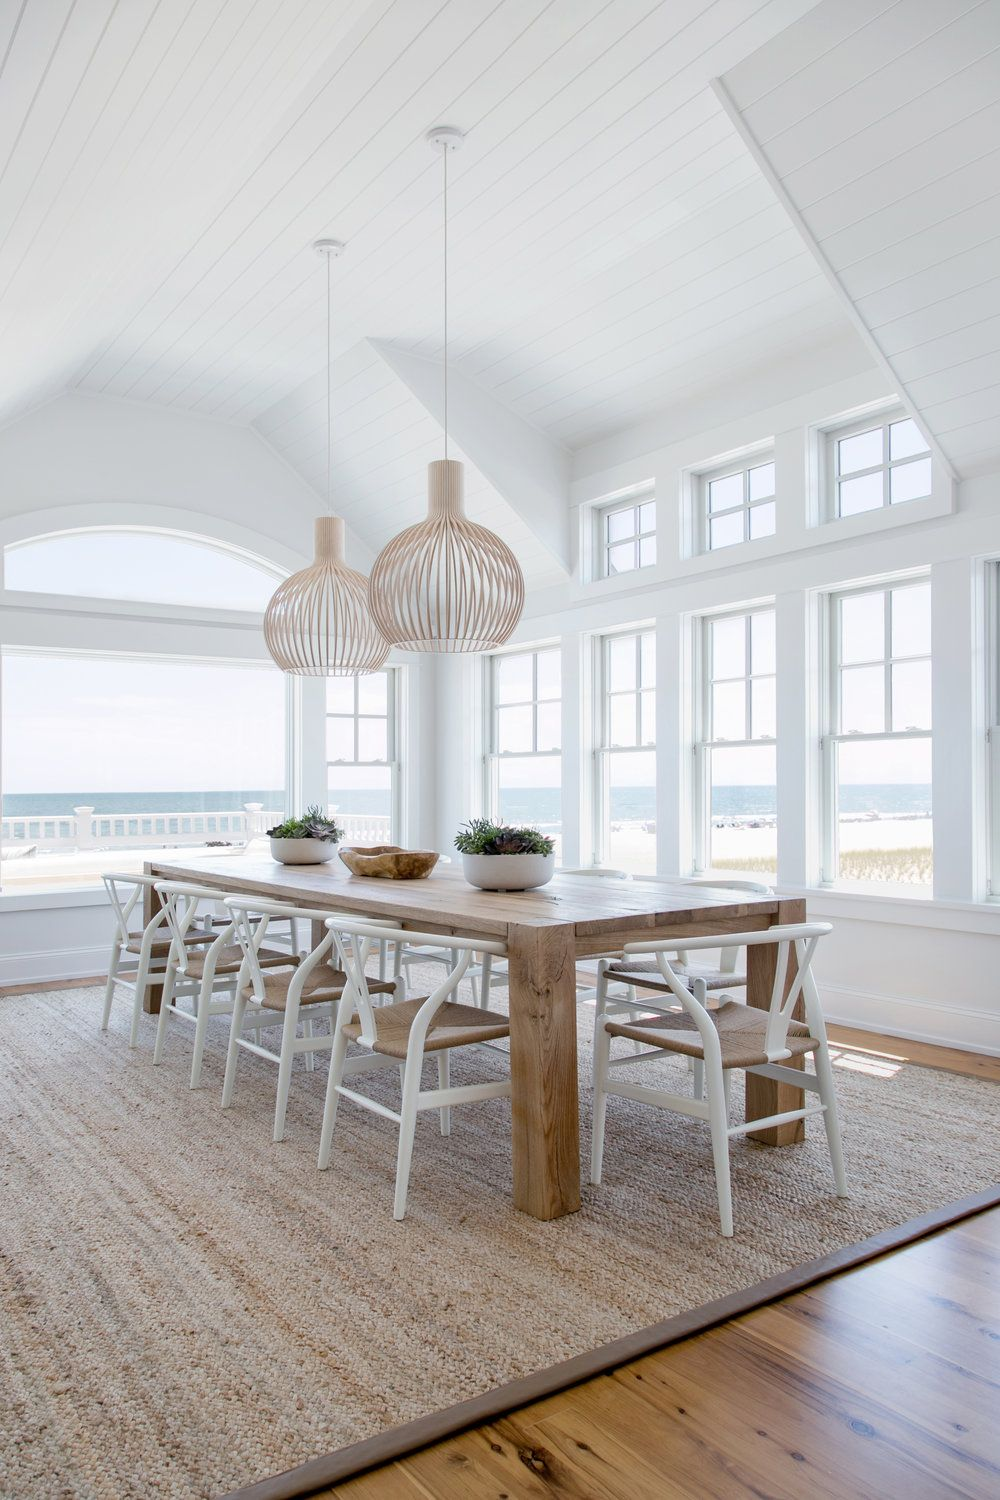 The Contrast Between Crisp Bright White And Warm Wood